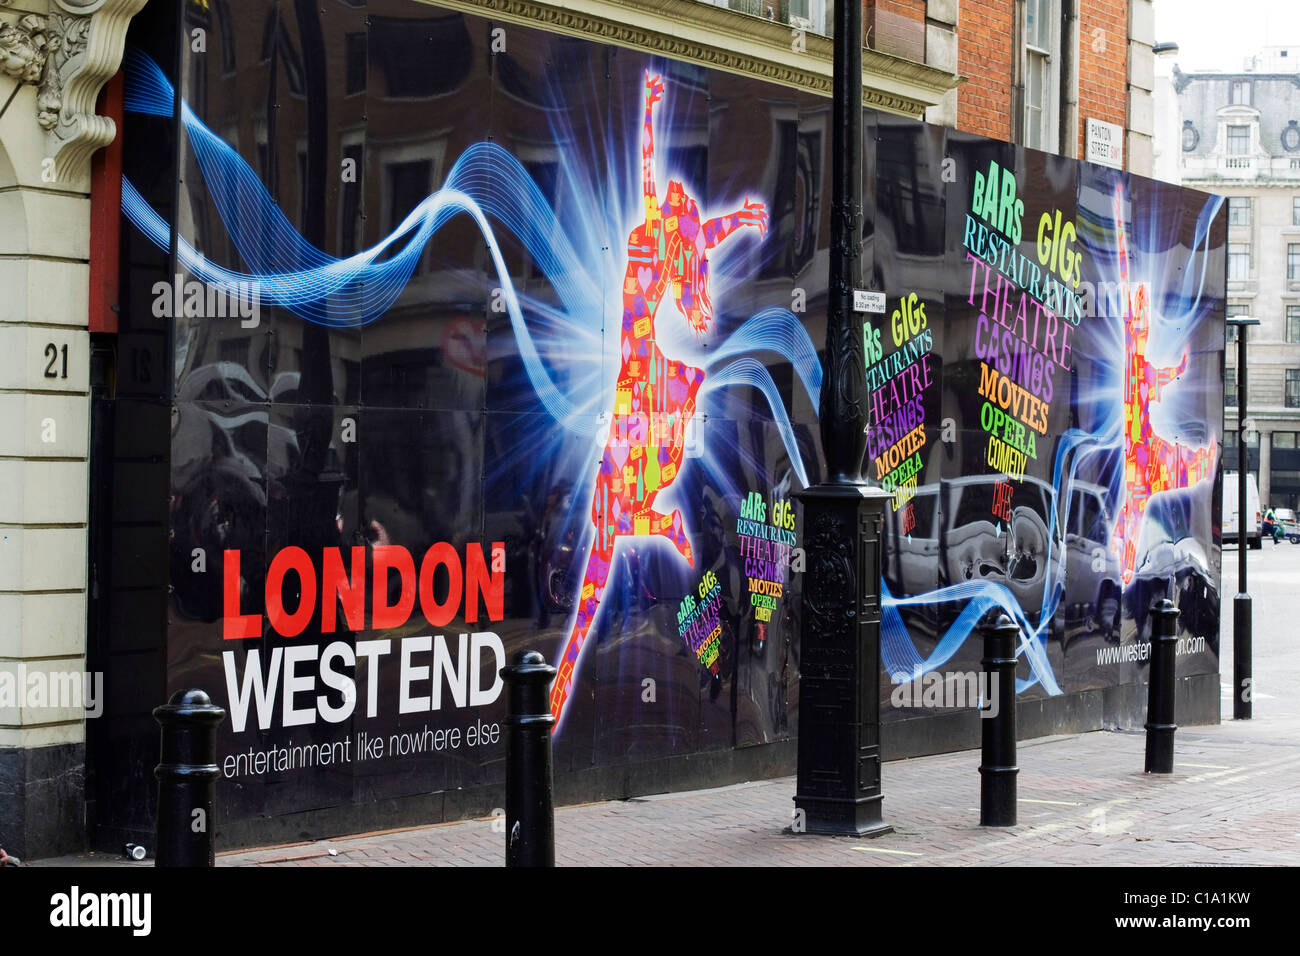 Theater Billboard Advertising London's West End - Stock Image